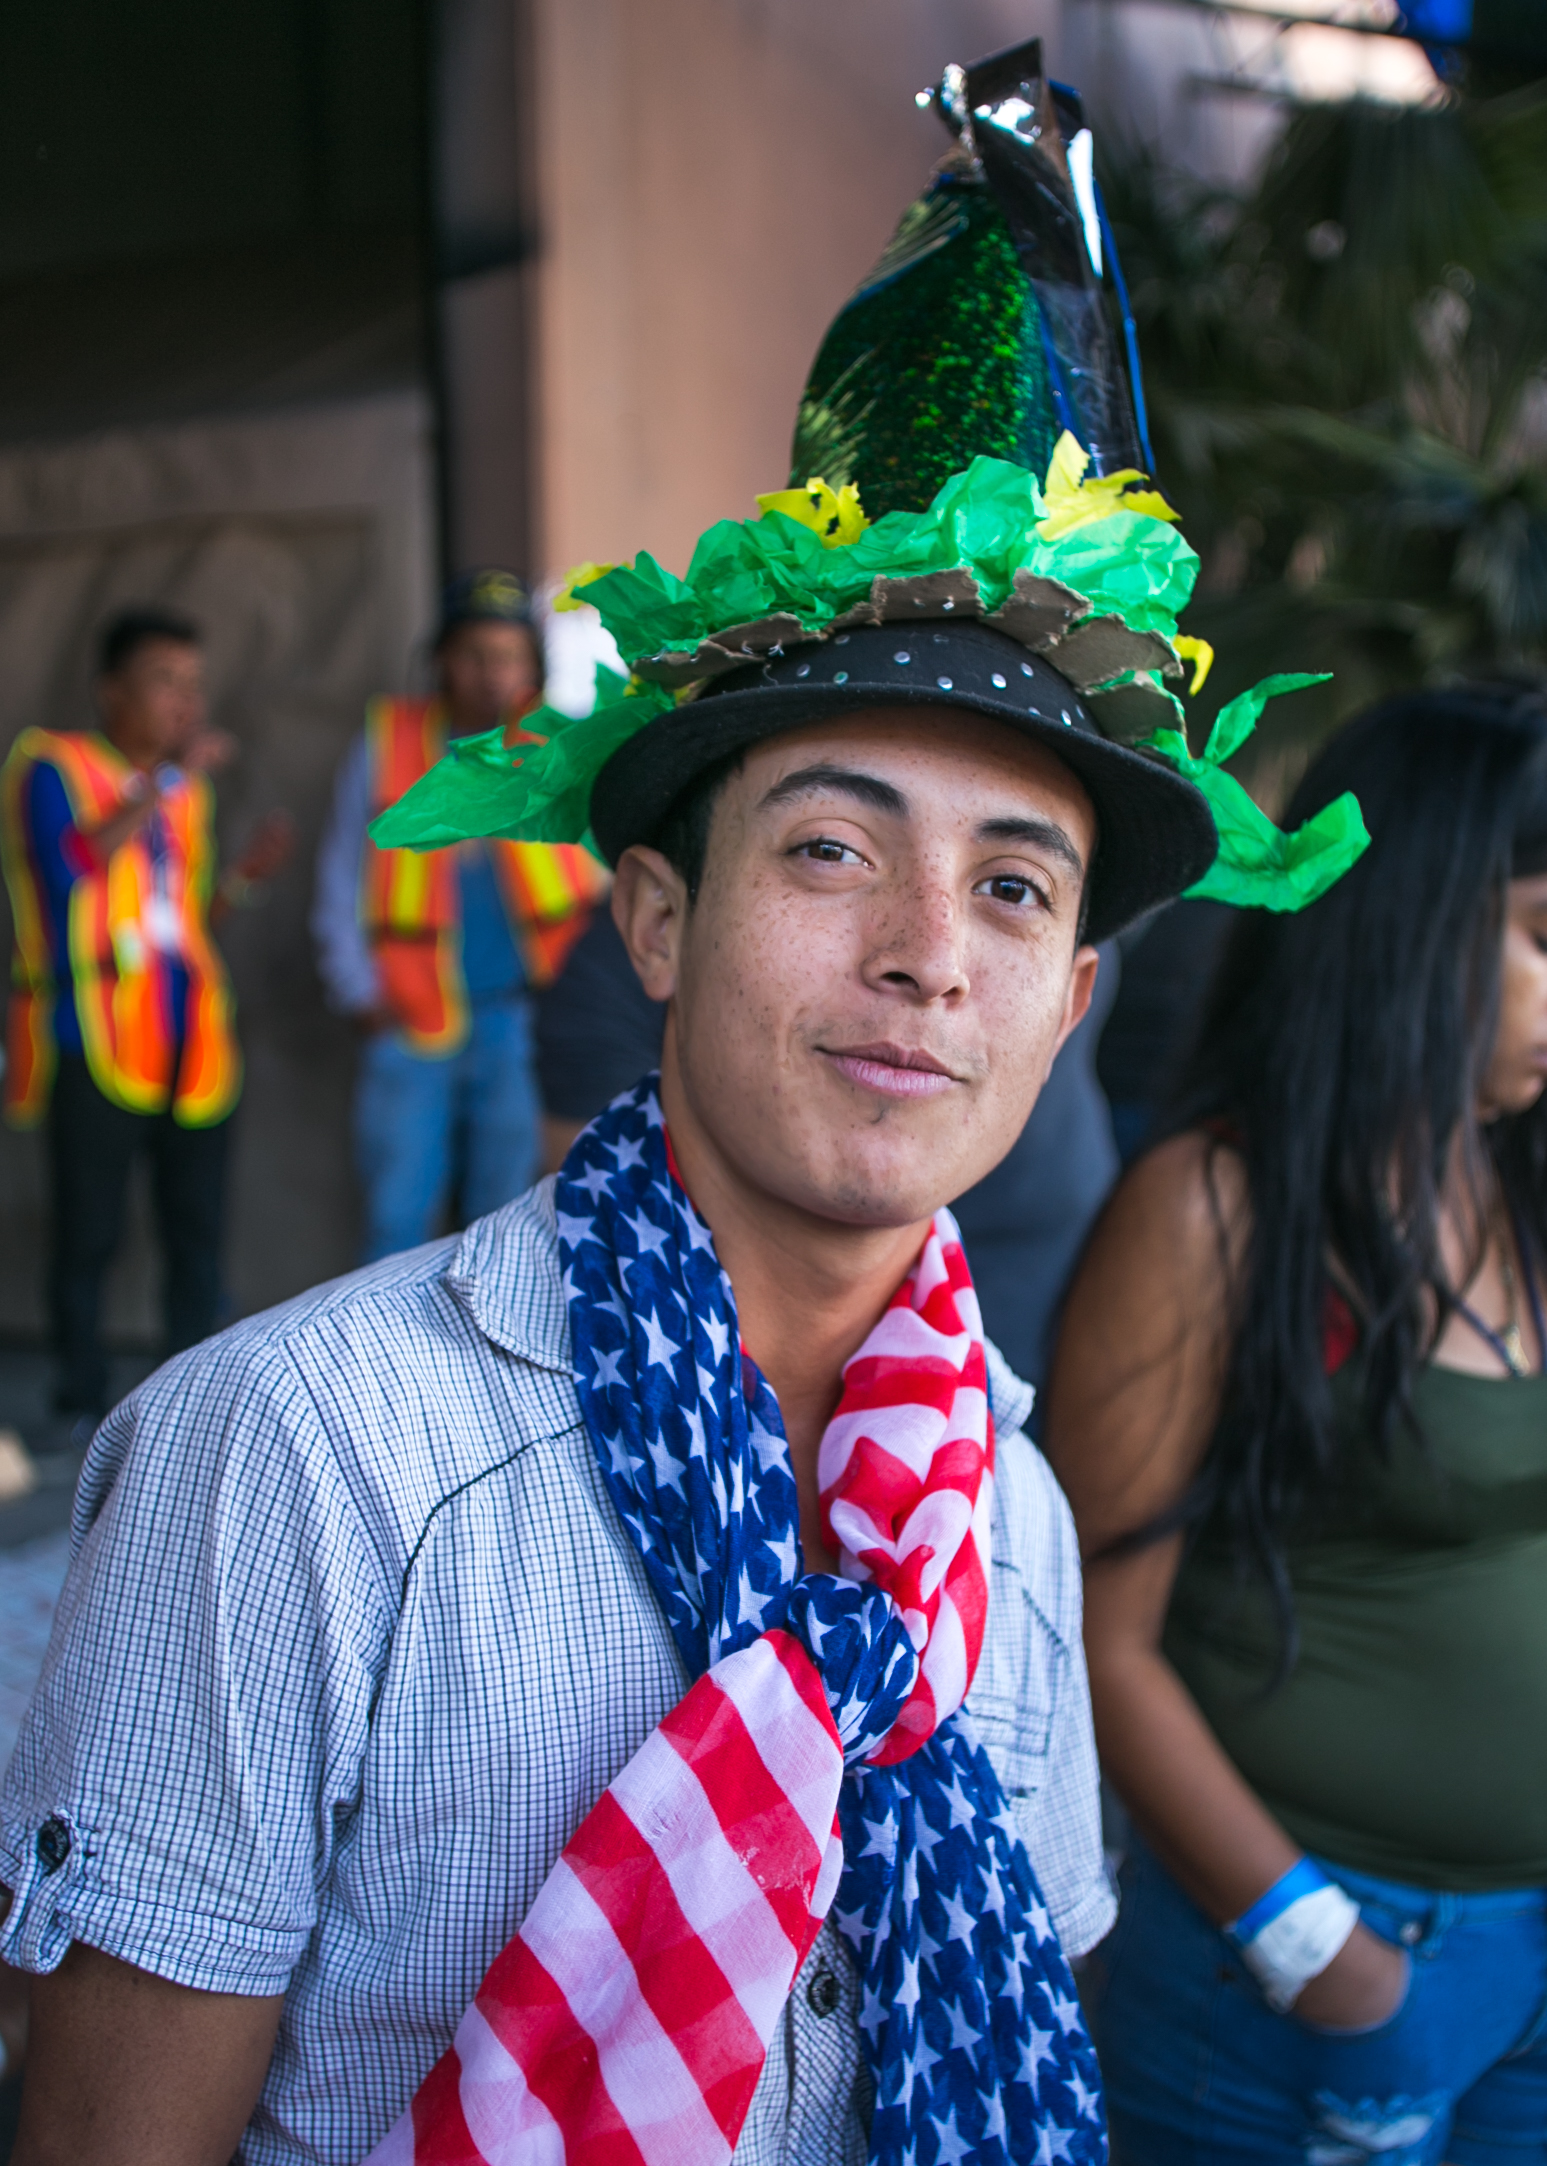 A refugee smiles during a mid-day piñata party at the Barretal camp located in Tijuana, Mexico.